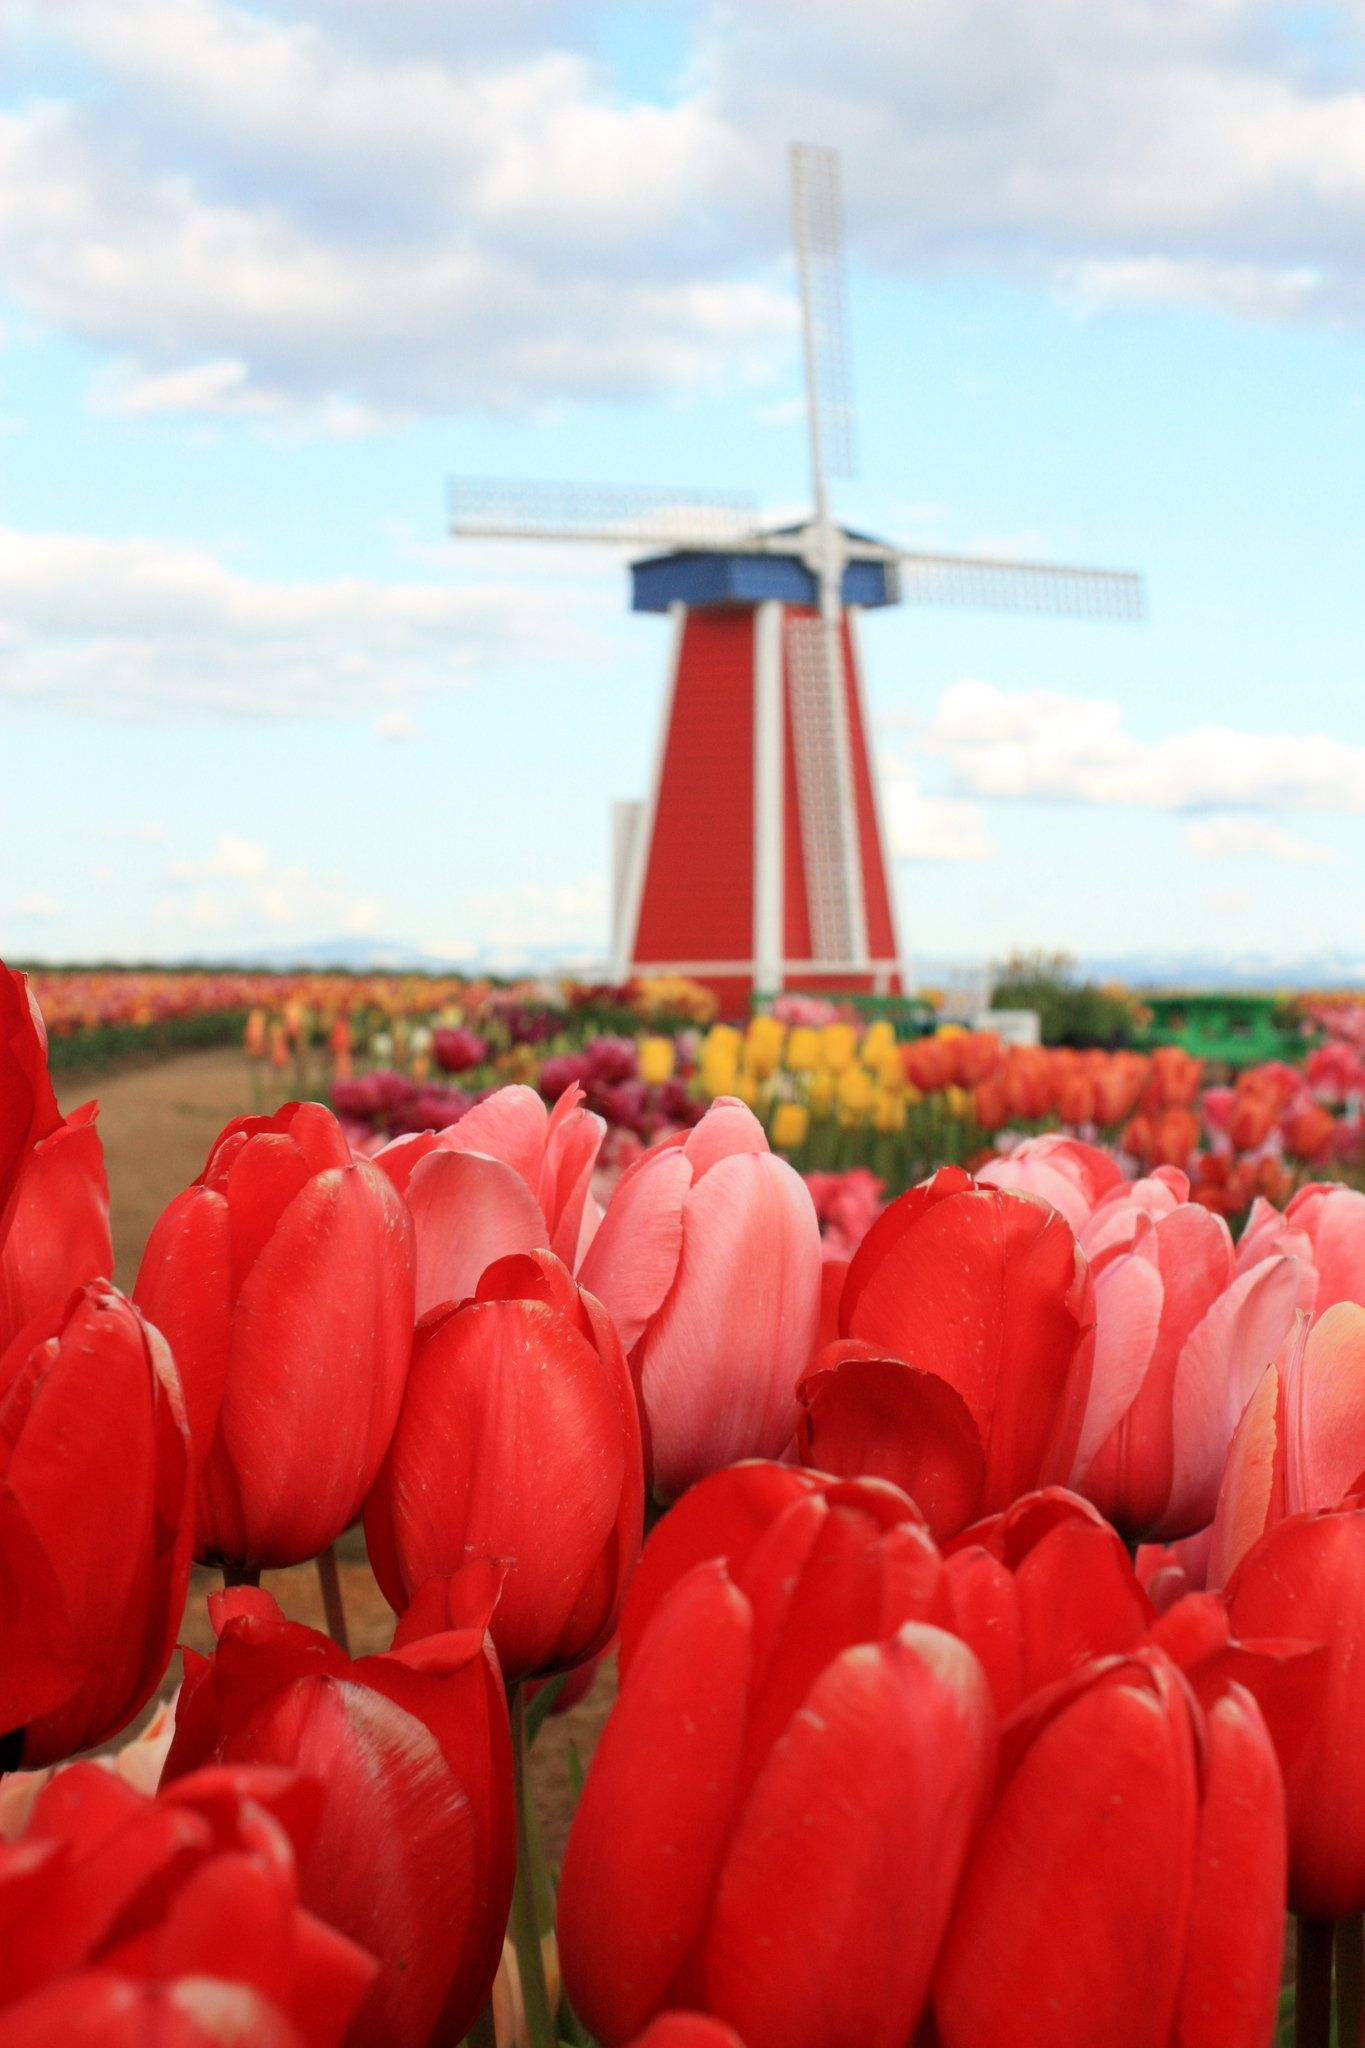 Wooden Shoe Windmill Tulips Holland The Netherlands Windmill Tulip Festival Tulips